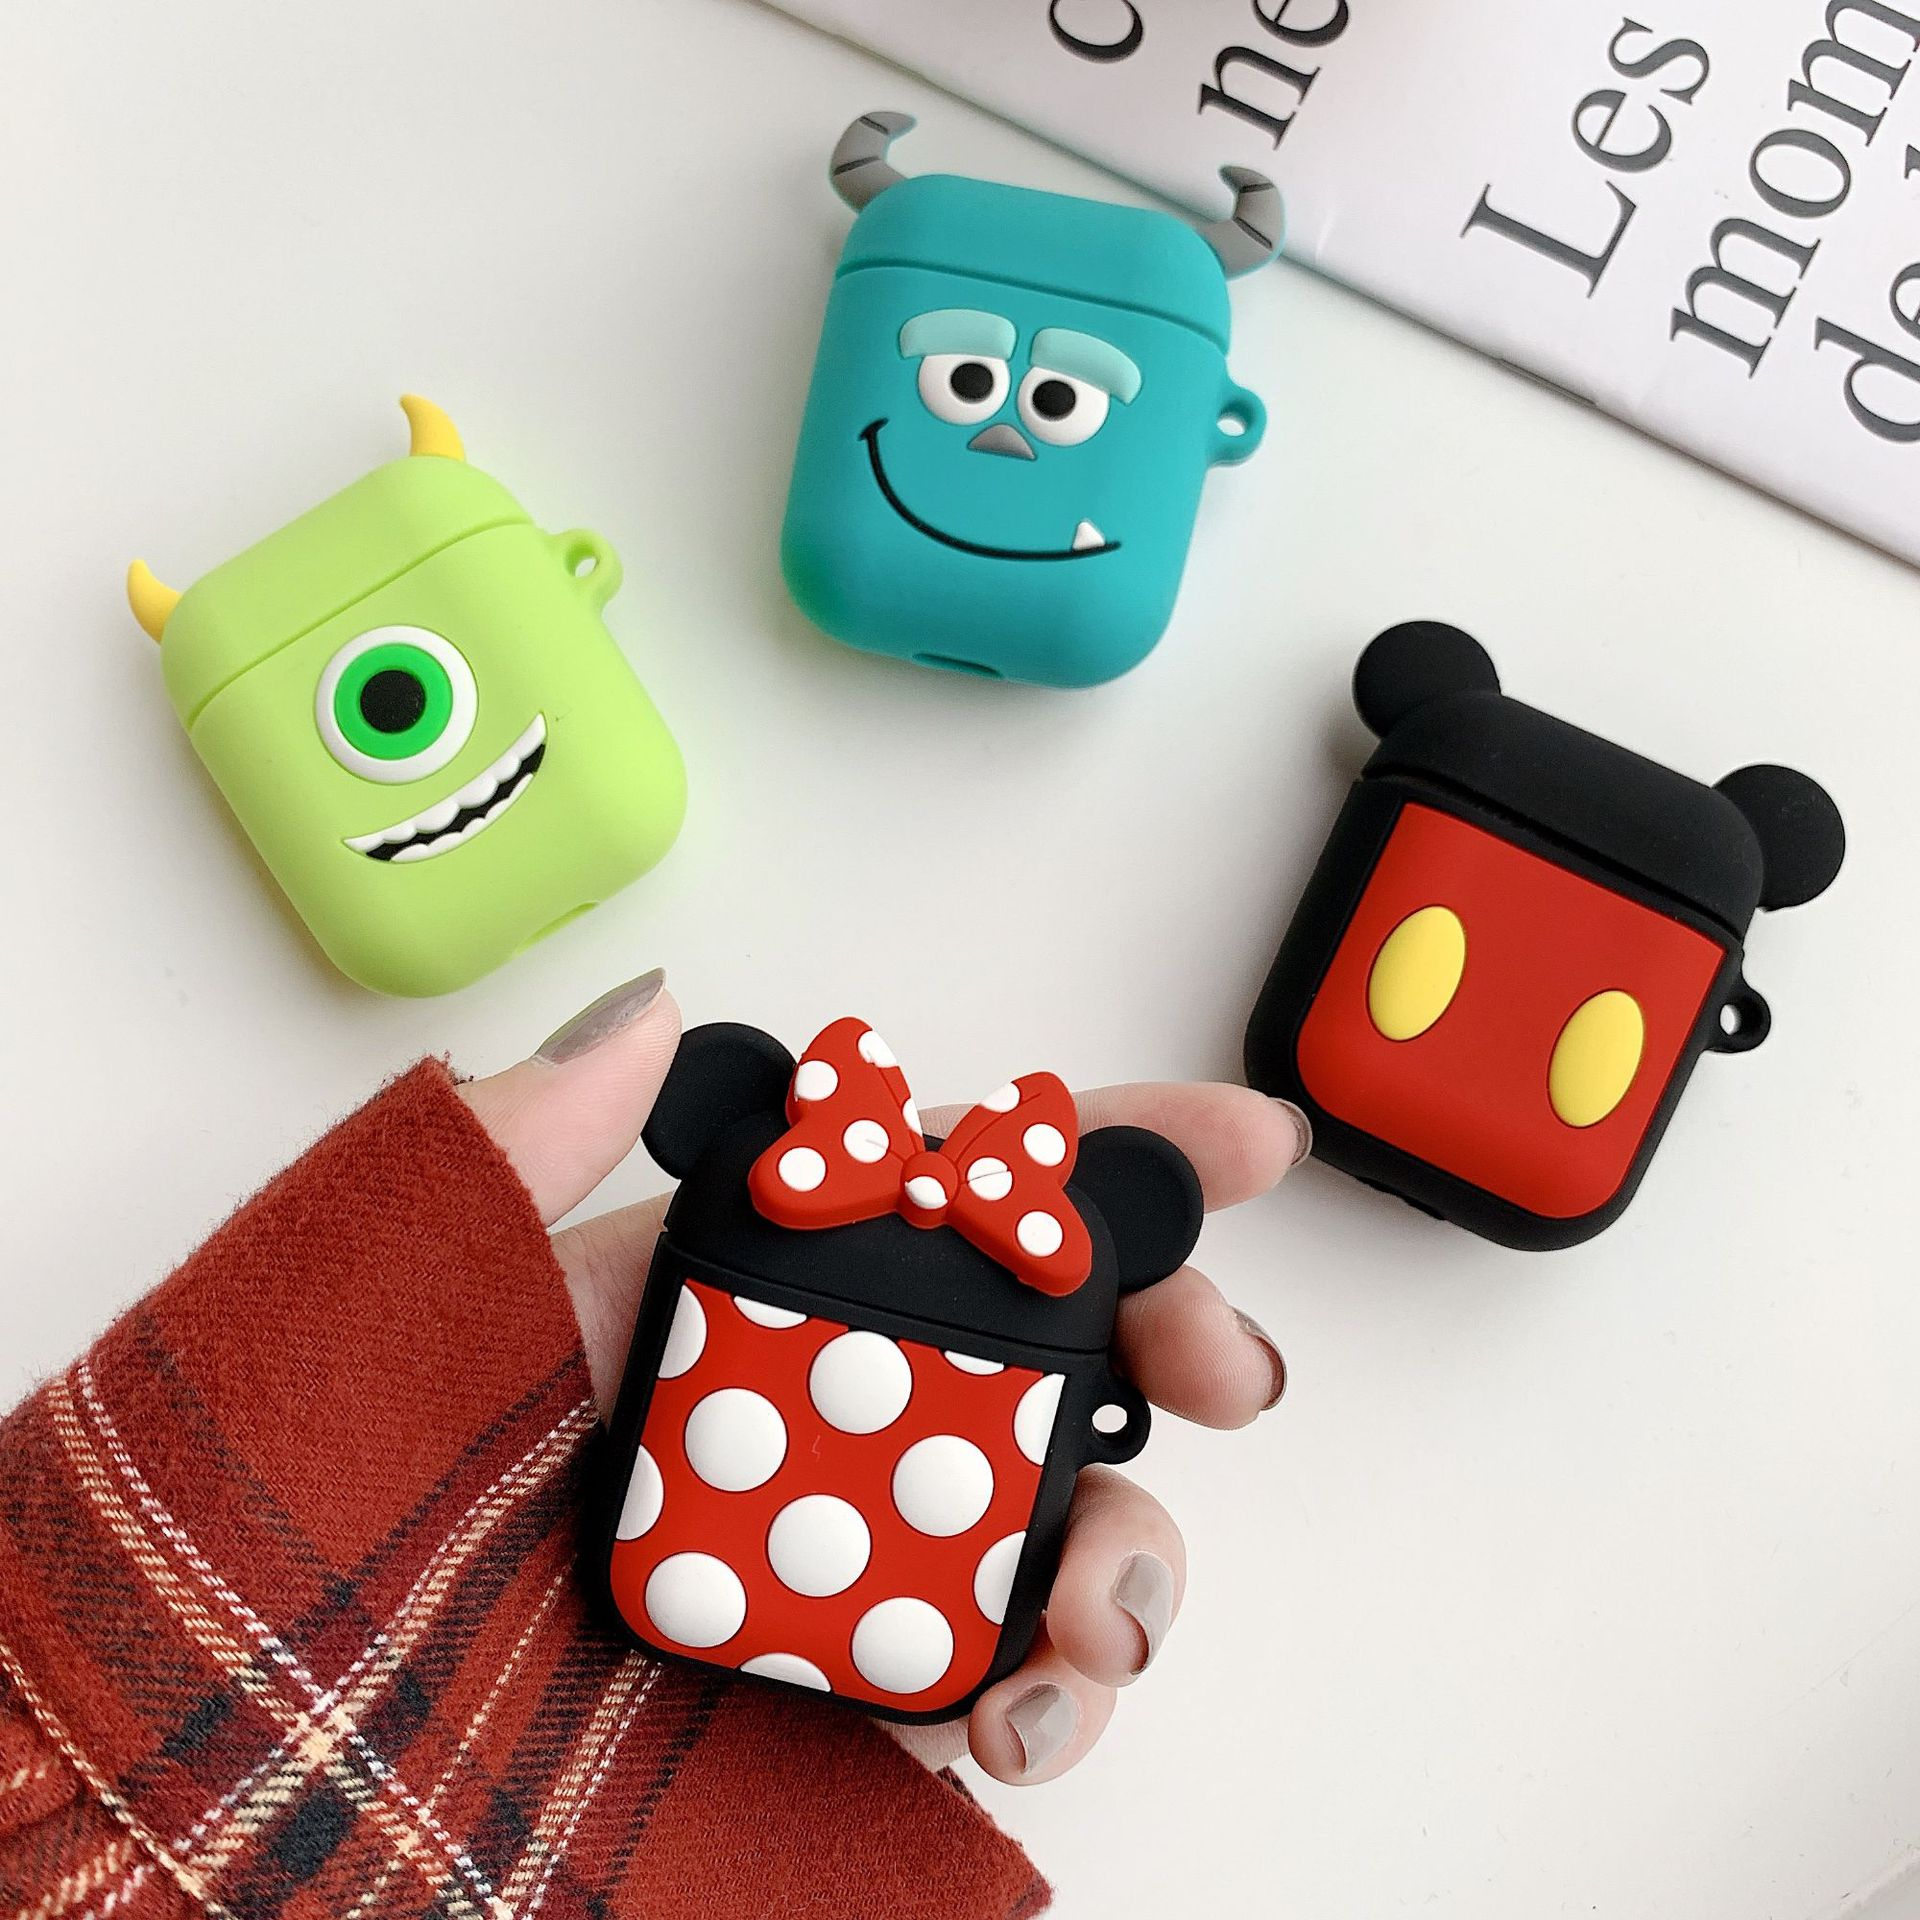 For Airpods Case 3D Cute Silicone Cartoon Airpods Charging Dock Cover фото